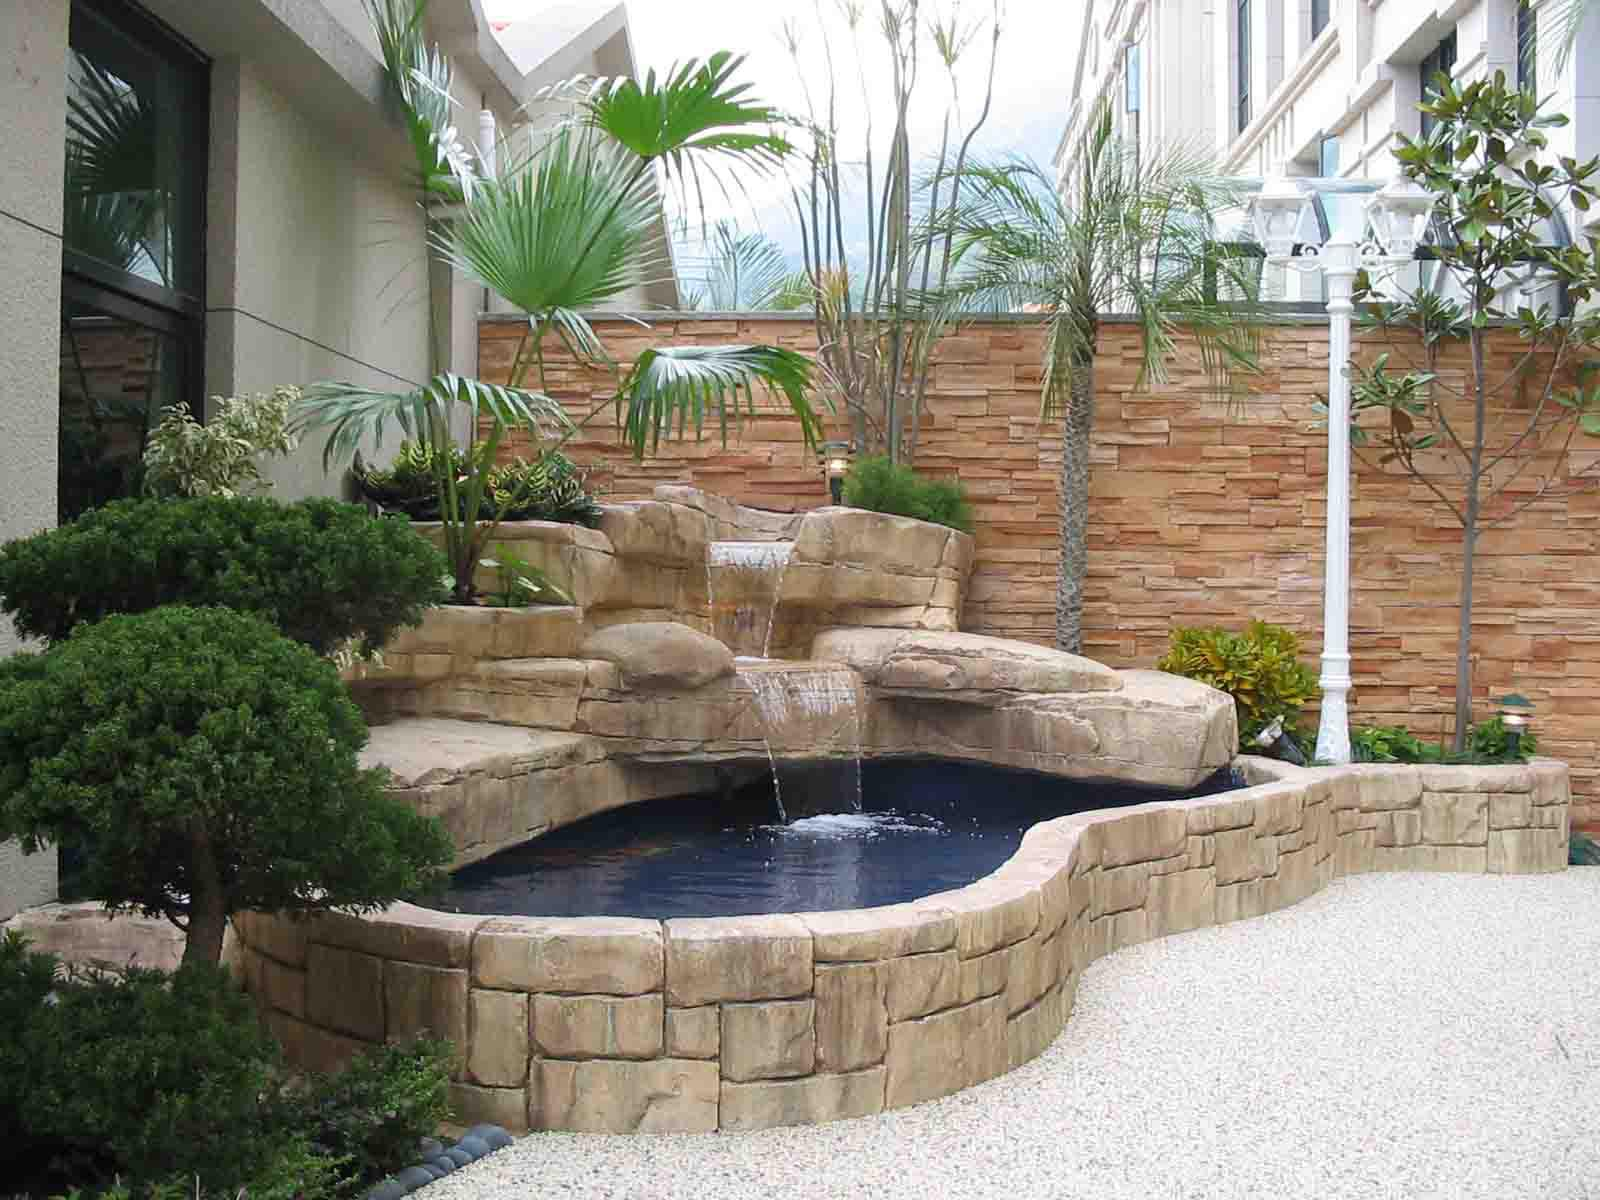 Fish pond garden design backyard design ideas for Small garden with pond design